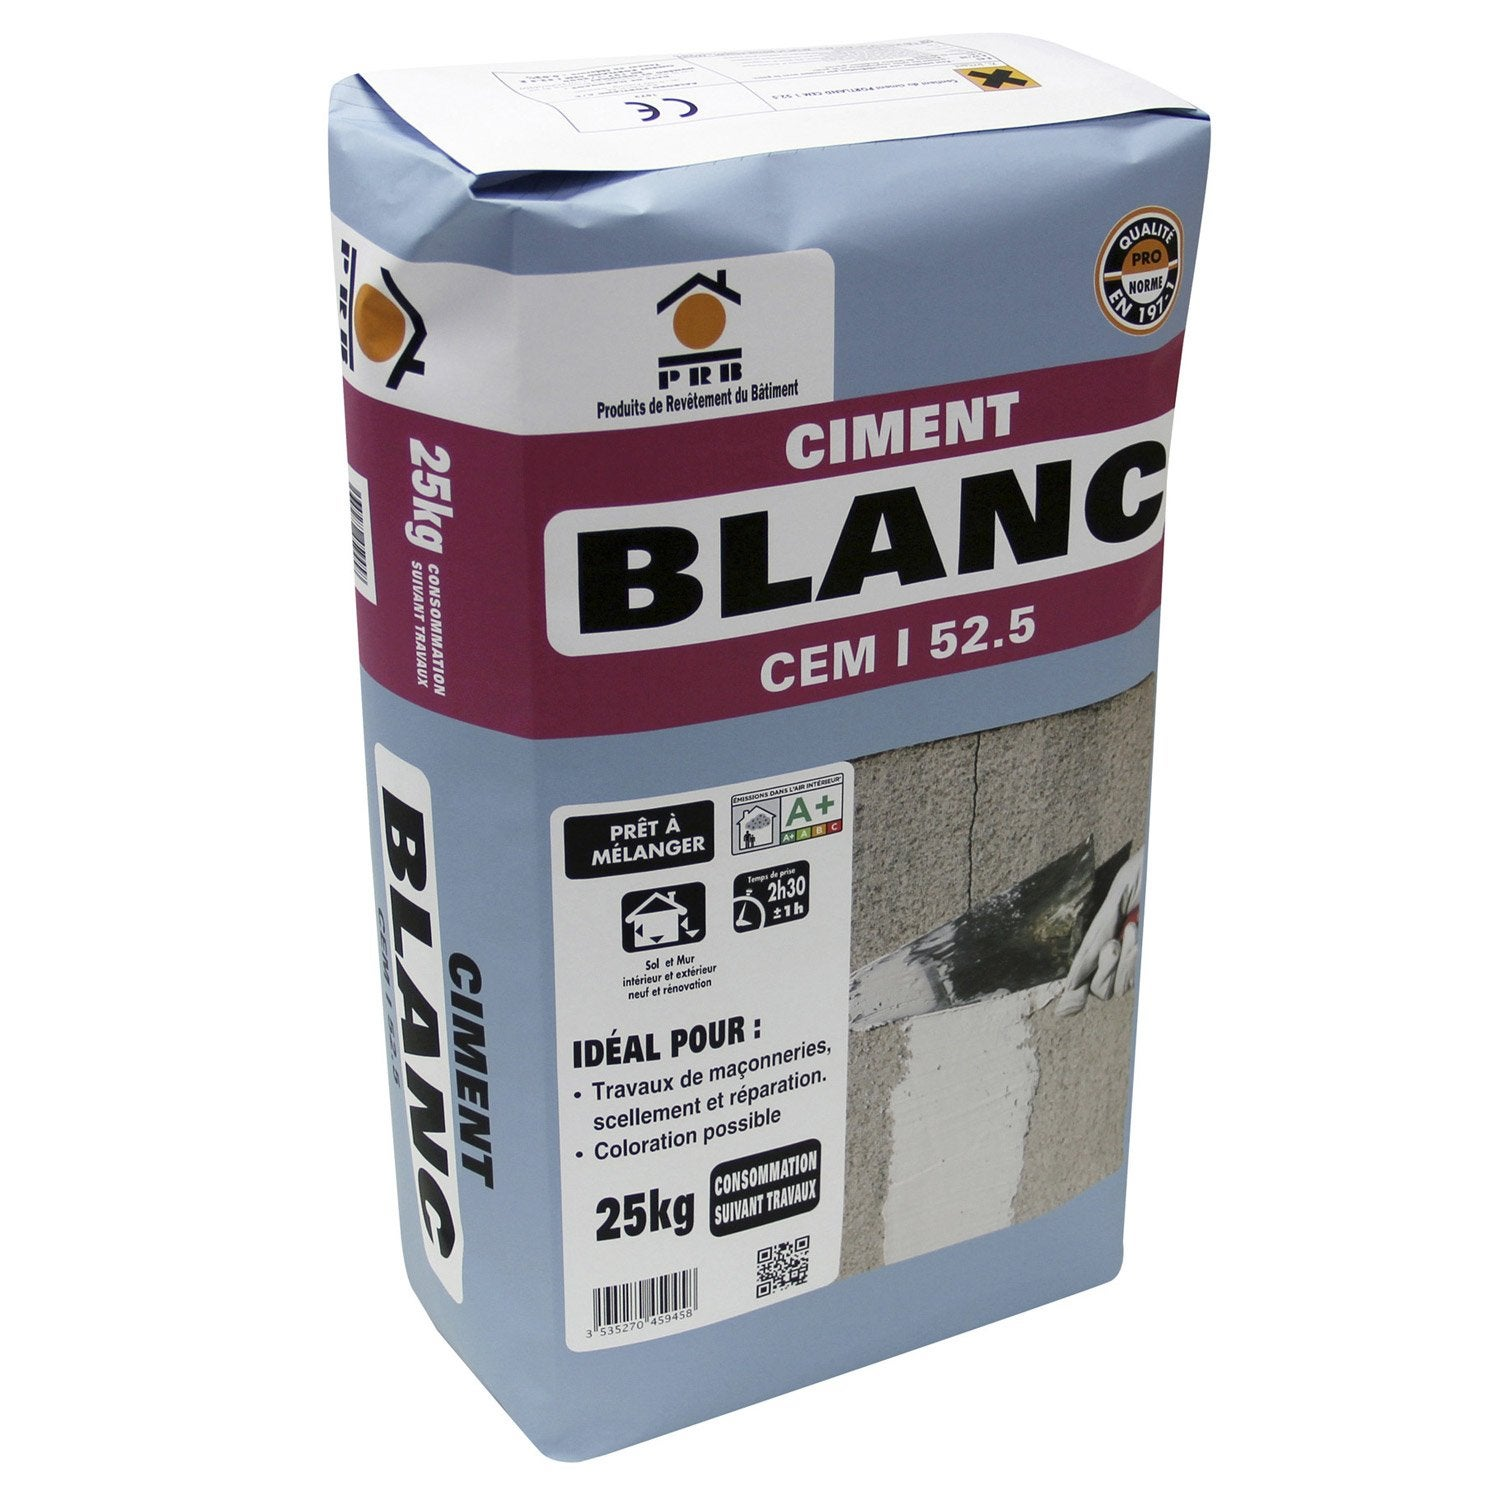 Ciment blanc ce prb 25 kg leroy merlin - Dosage mortier chaux ciment sable ...